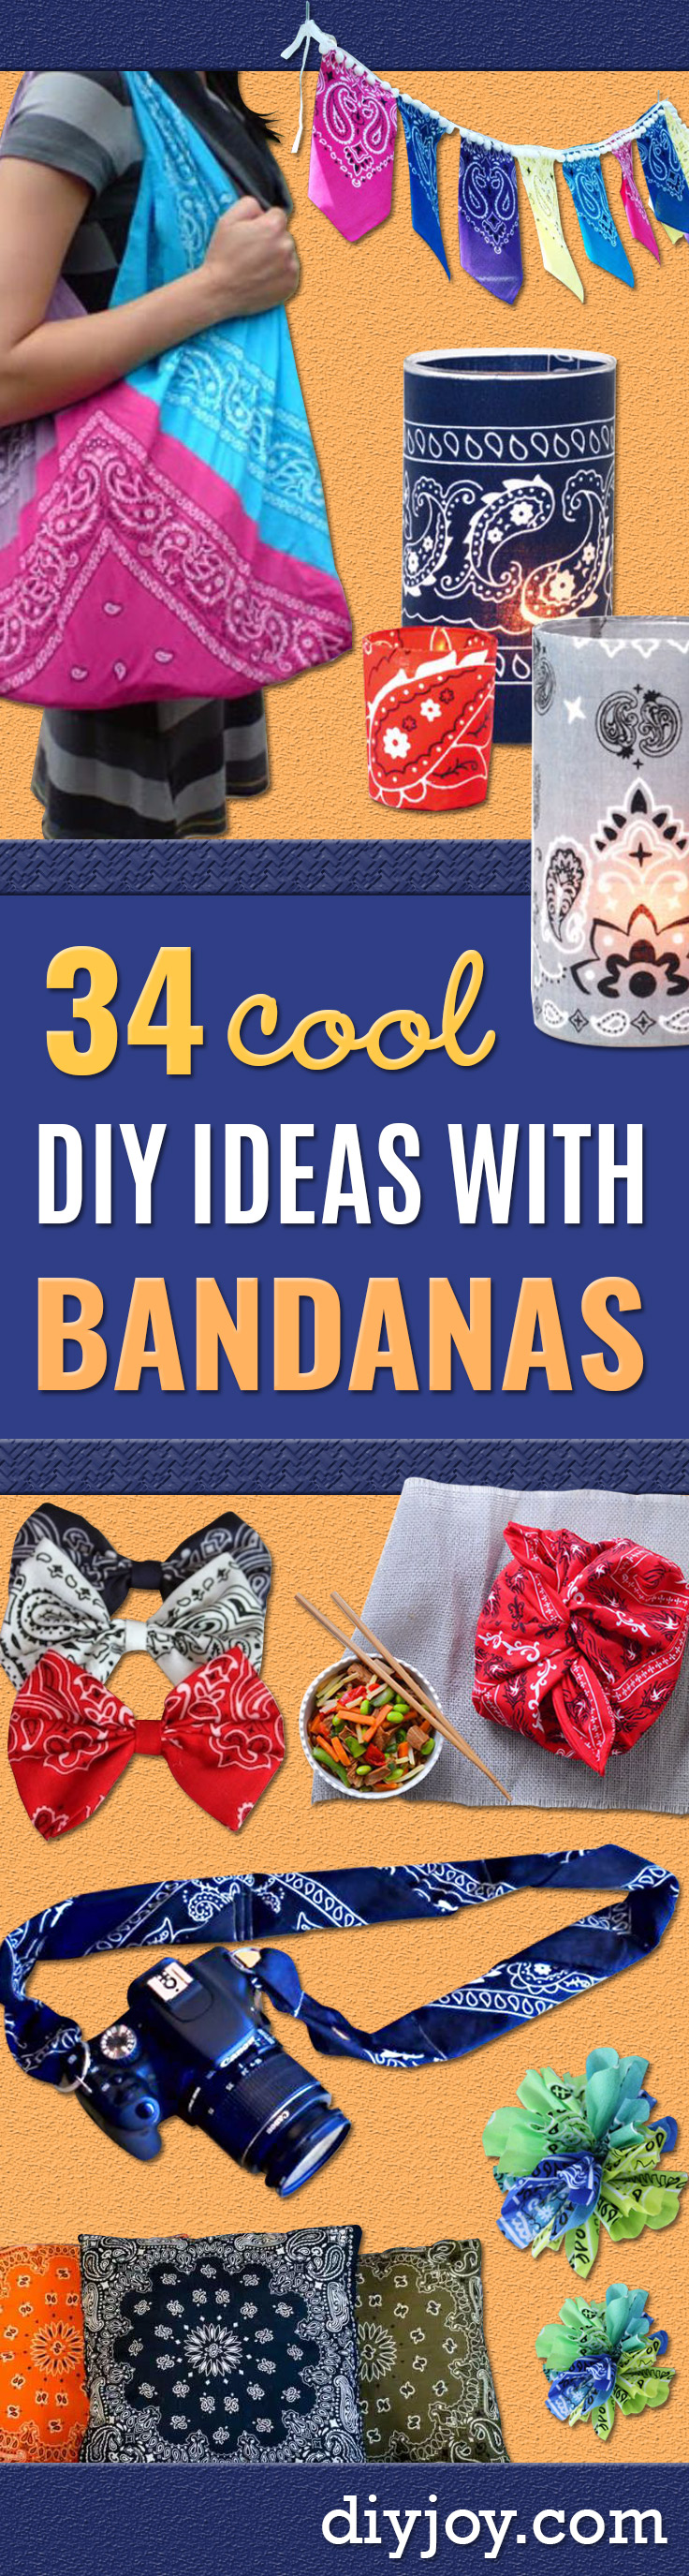 DIY Ideas With Bandanas - Bandana Crafts and Decor Projects Made With A Bandana - No Sew Ideas, Bags, Bracelets, Hats, Halter Tops, Blankets and Quilts, Headbands, Simple Craft Project Tutorials for Kids and Teens - Home Decoration and Country Themed Crafts To Make and Sell On Etsy http://diyjoy.com/diy-ideas-bandanas